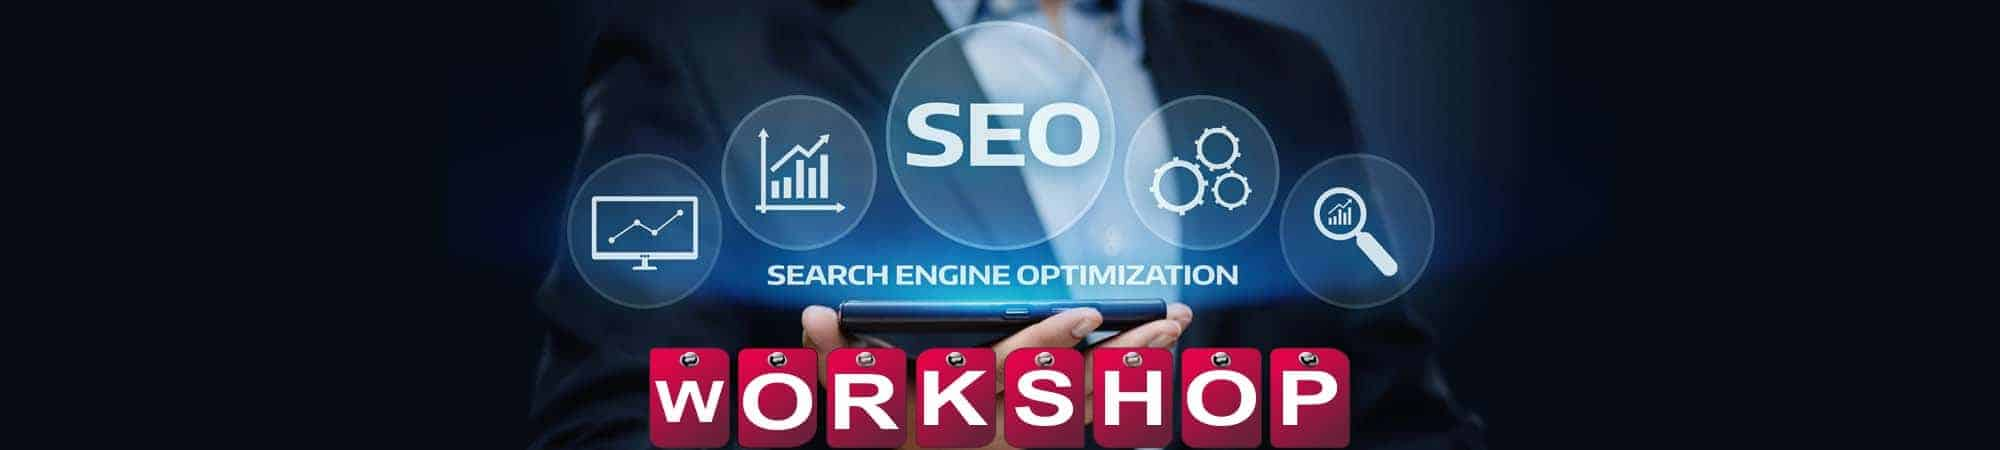 Workshop SEO zo doe je dat